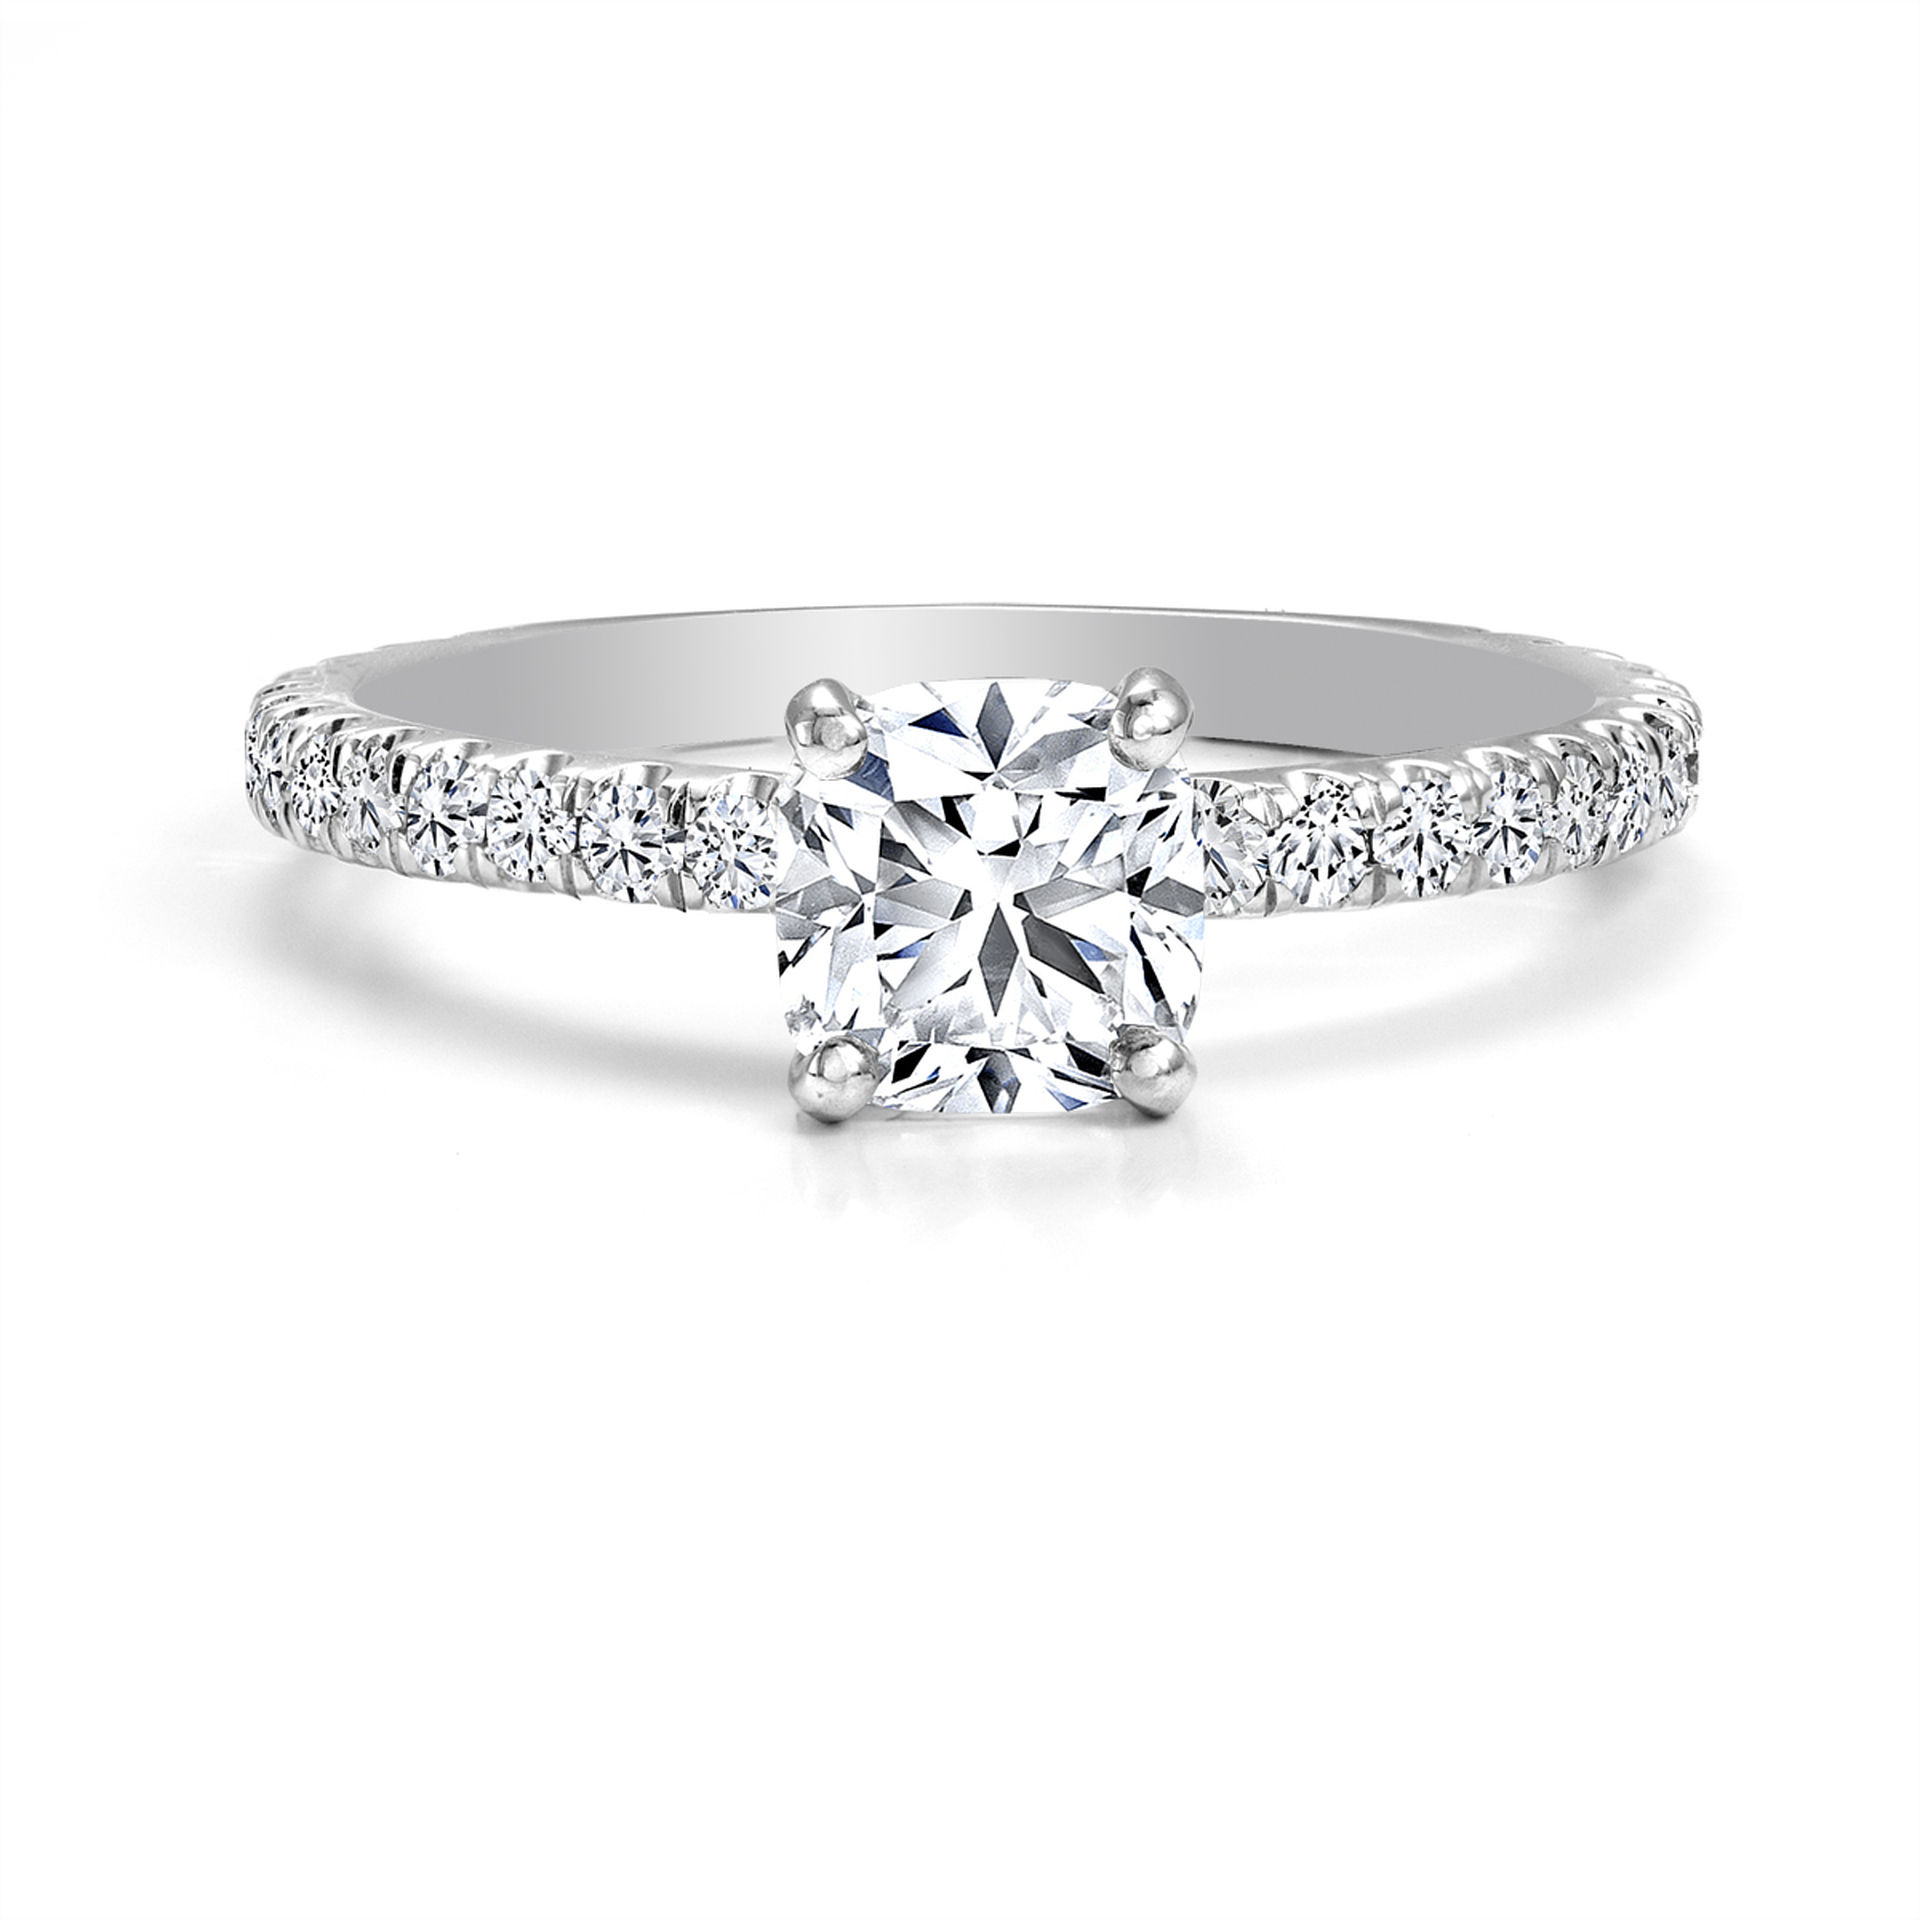 Forevermark Collection 18ct white gold Diamond Ring 0.51ct